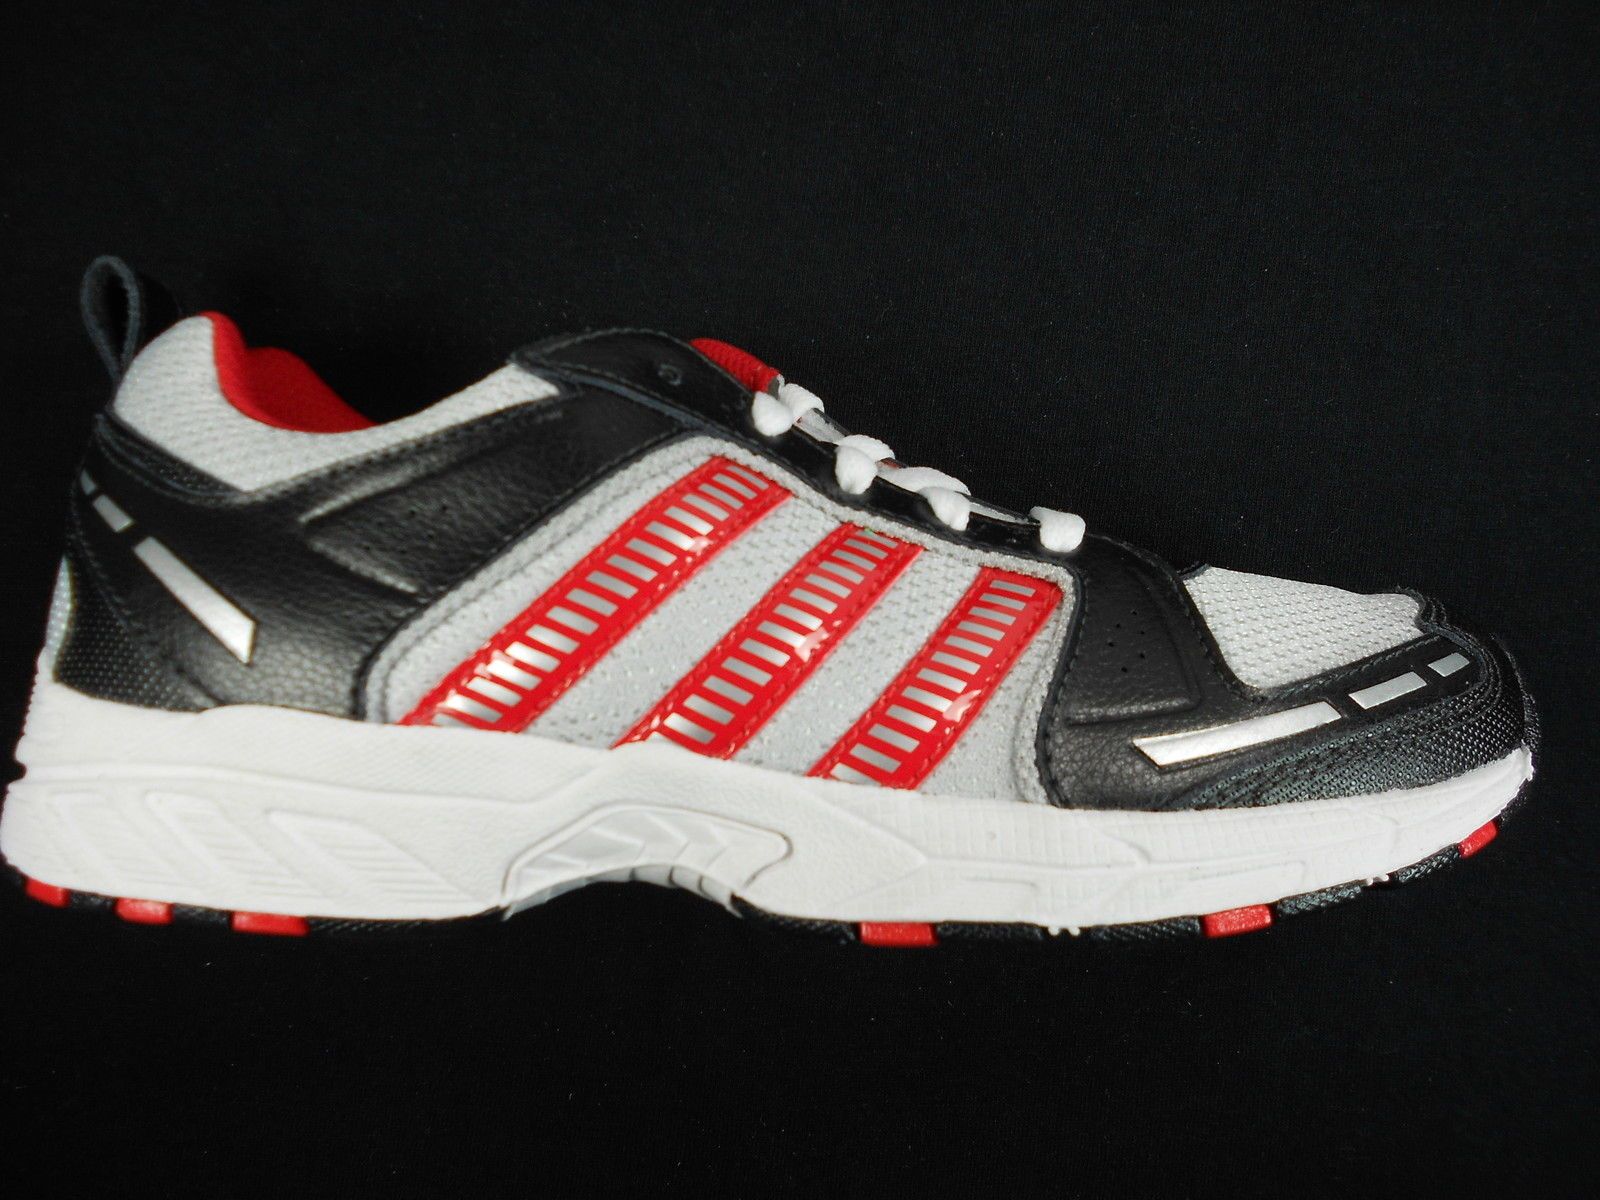 uk availability bbbfb 8a7b6 ADIDAS ADIRUN 2 US YOUTH WHITE BLACK RED SHOES sz 4.5 ...